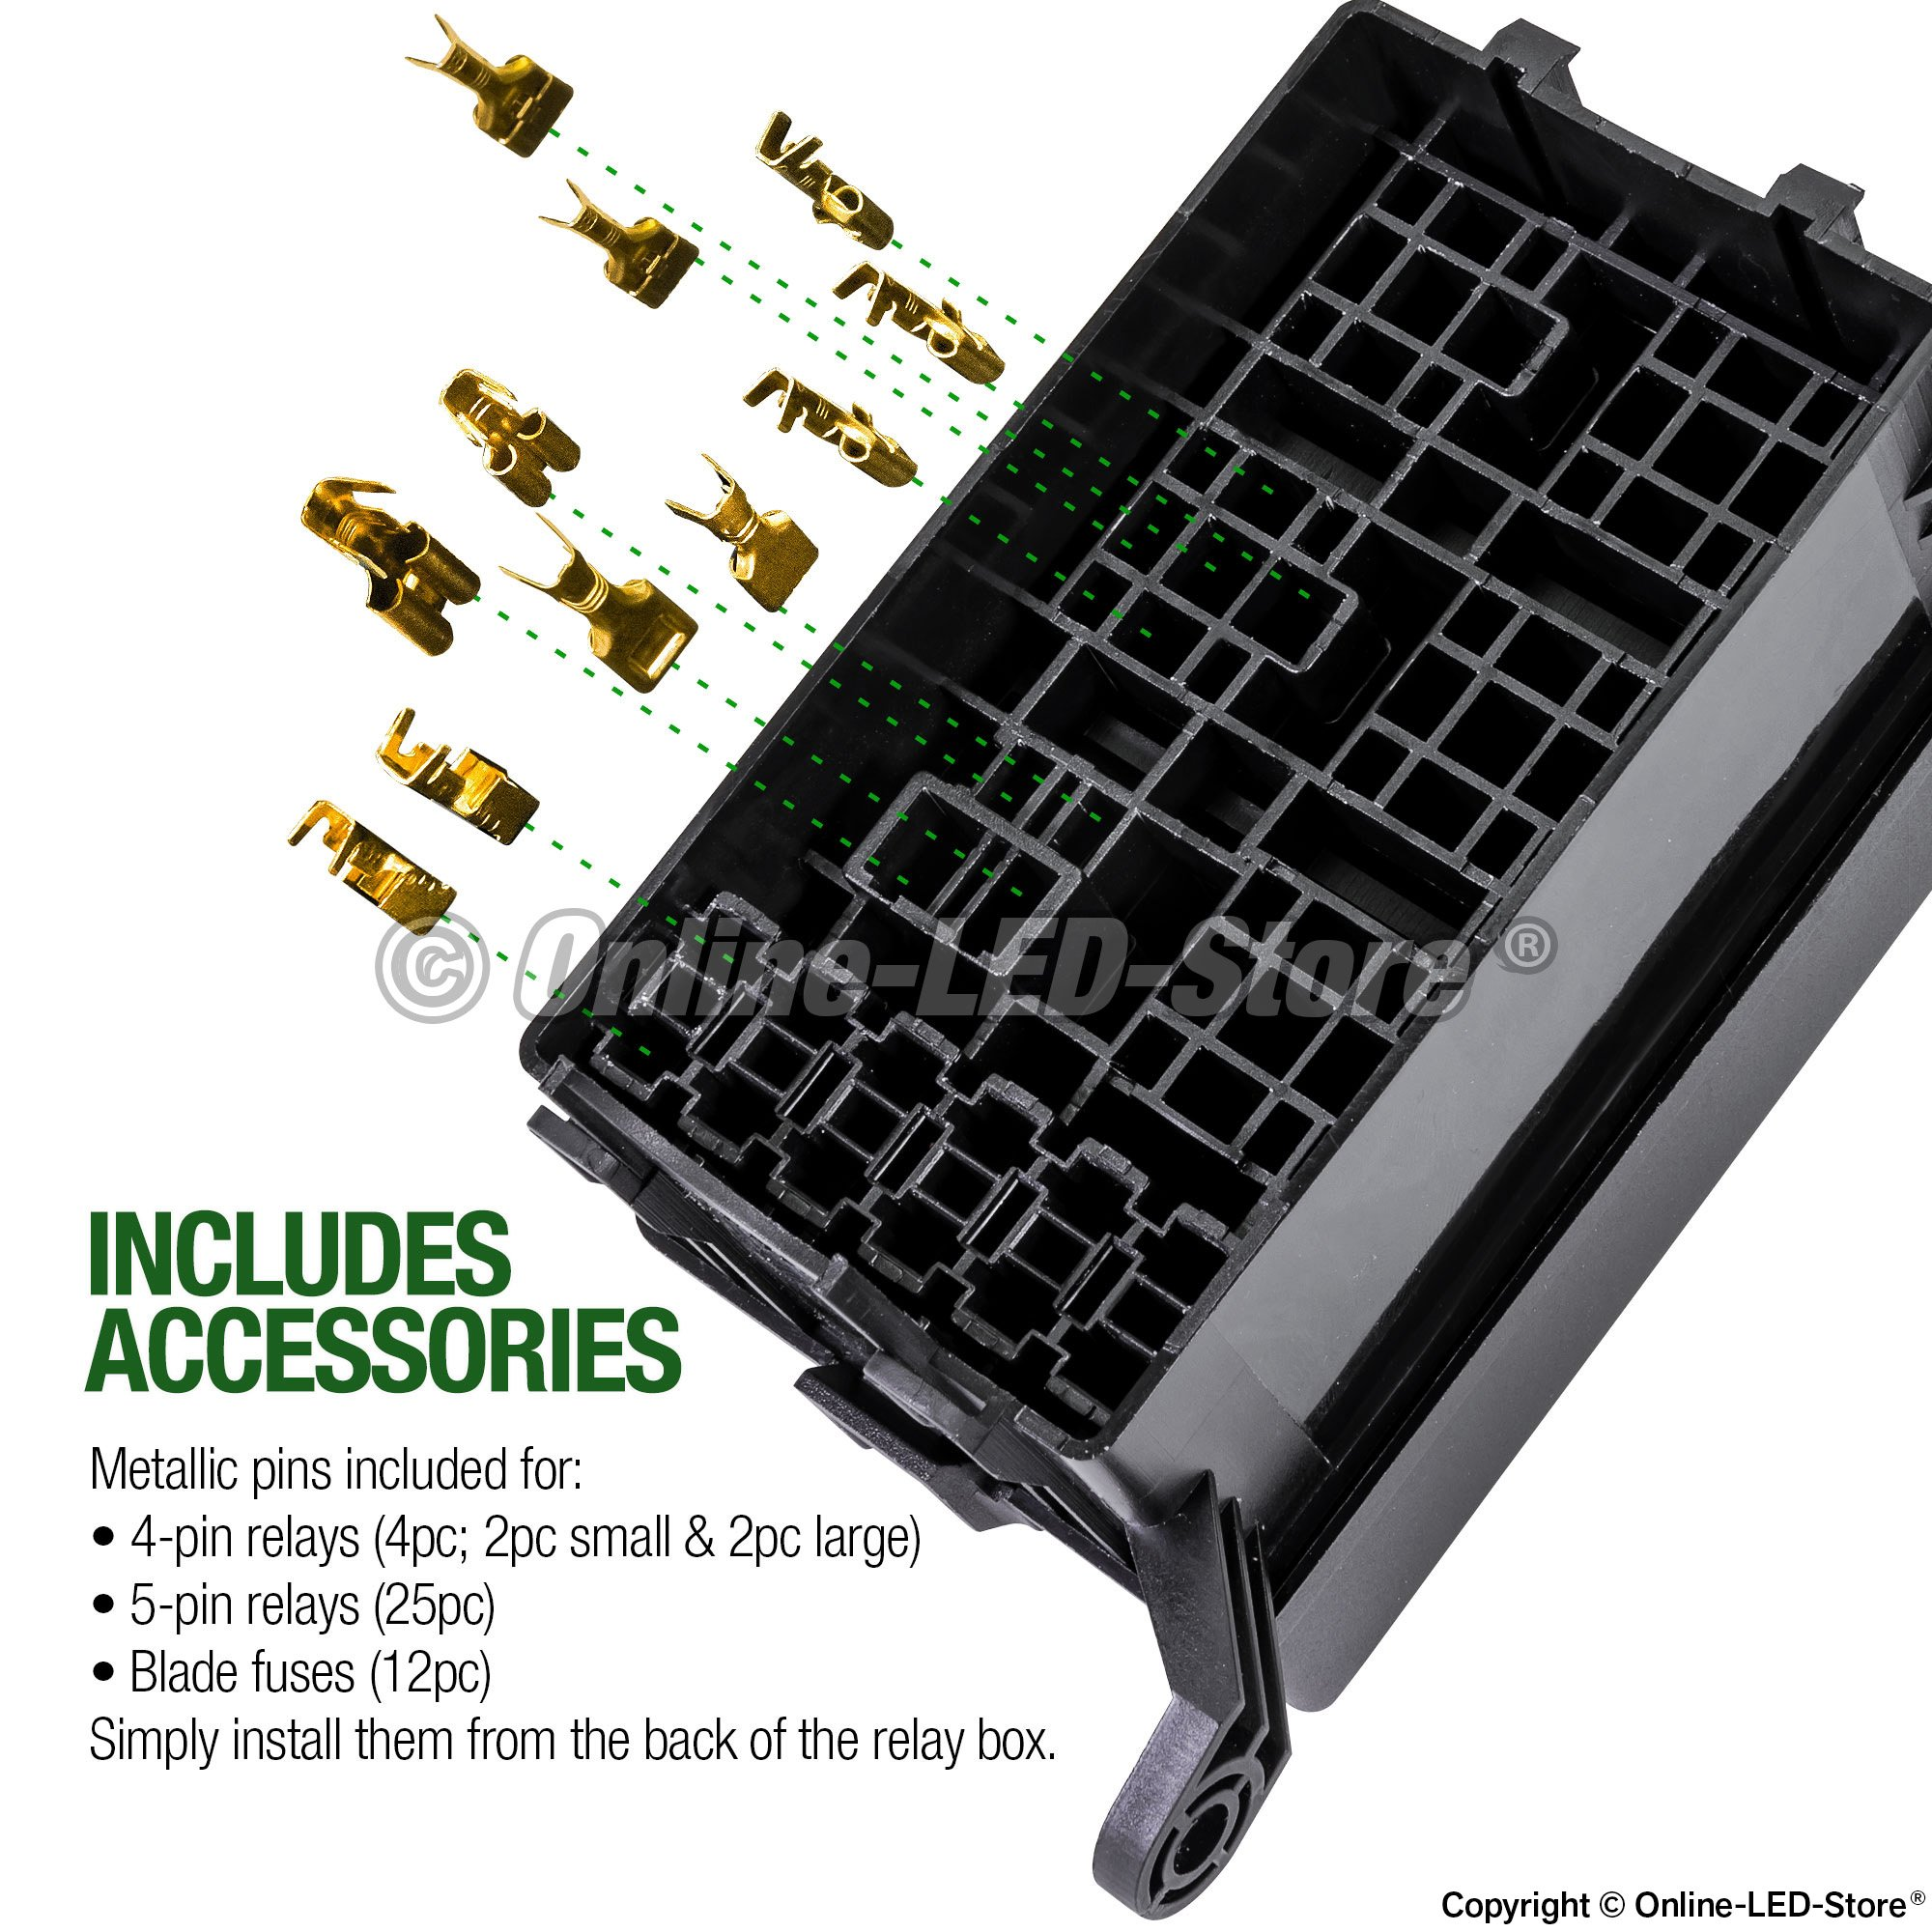 Online Led Store 12 Slot Relay Box 6 Relays Blade Fuses Bosch Fuse Car Vent Mount Style Easy Installation Oem Factory Look For Automotive